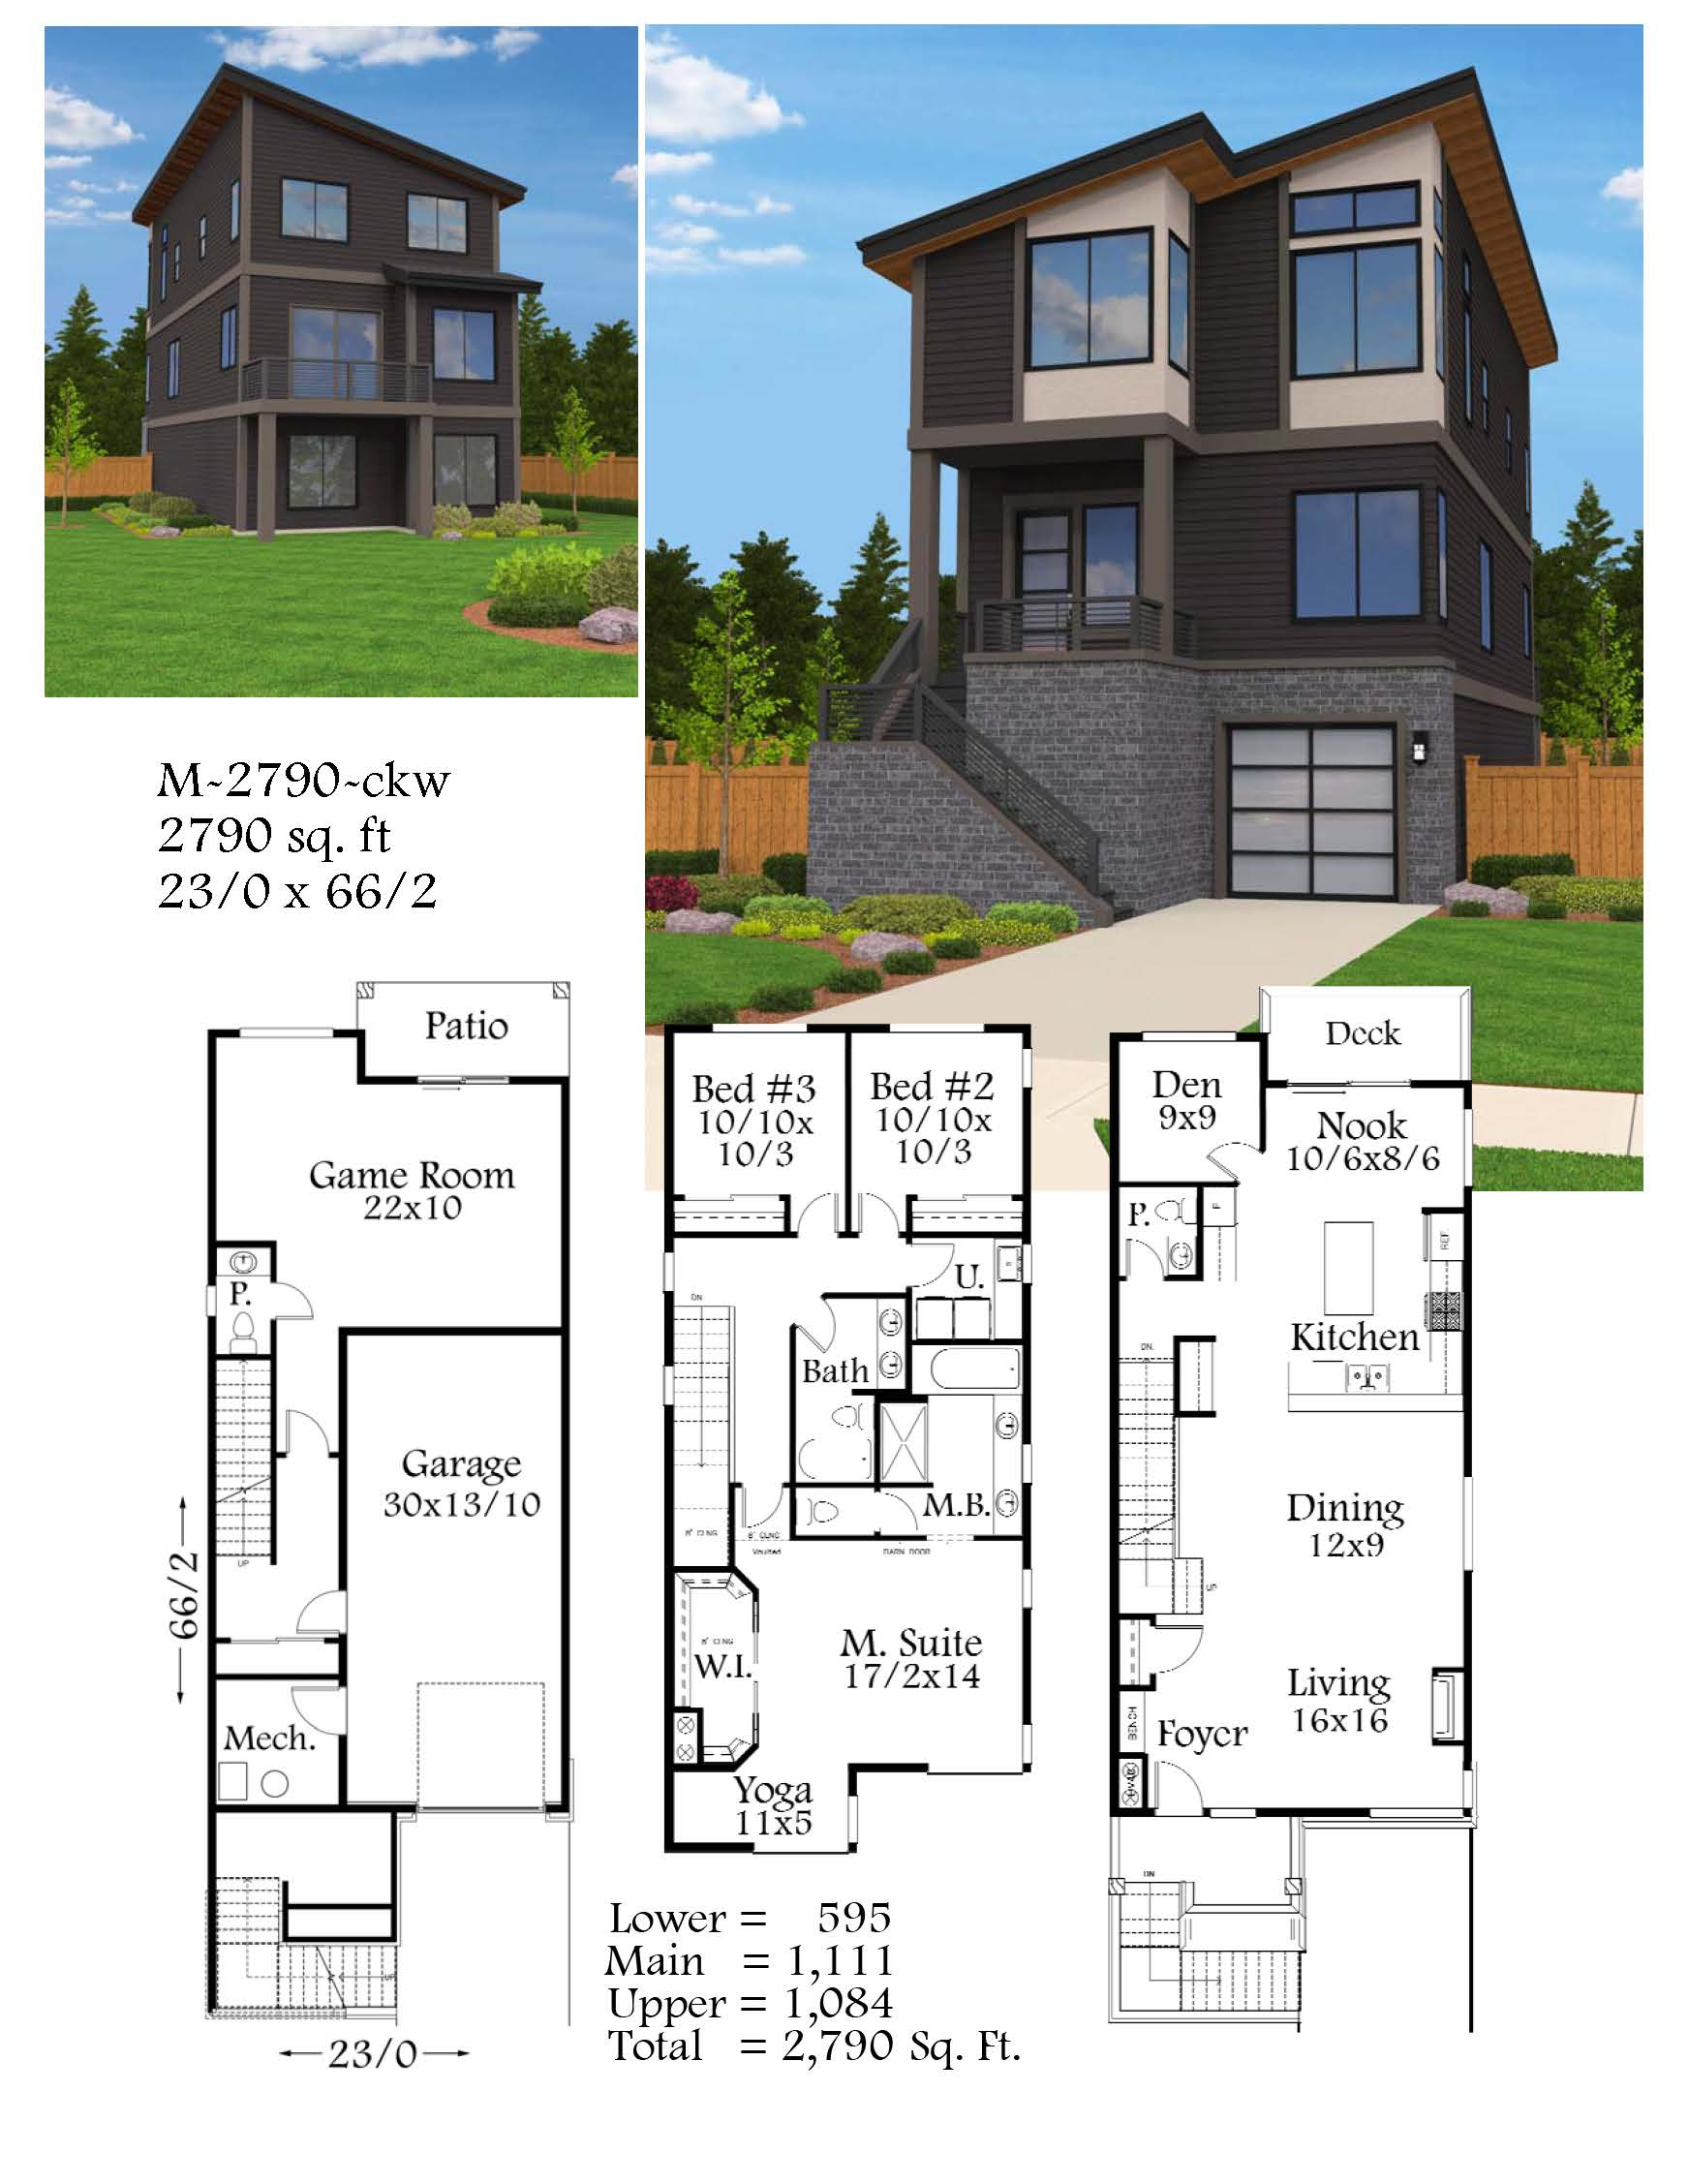 Madison house plan built in city of portland for Madison house plan